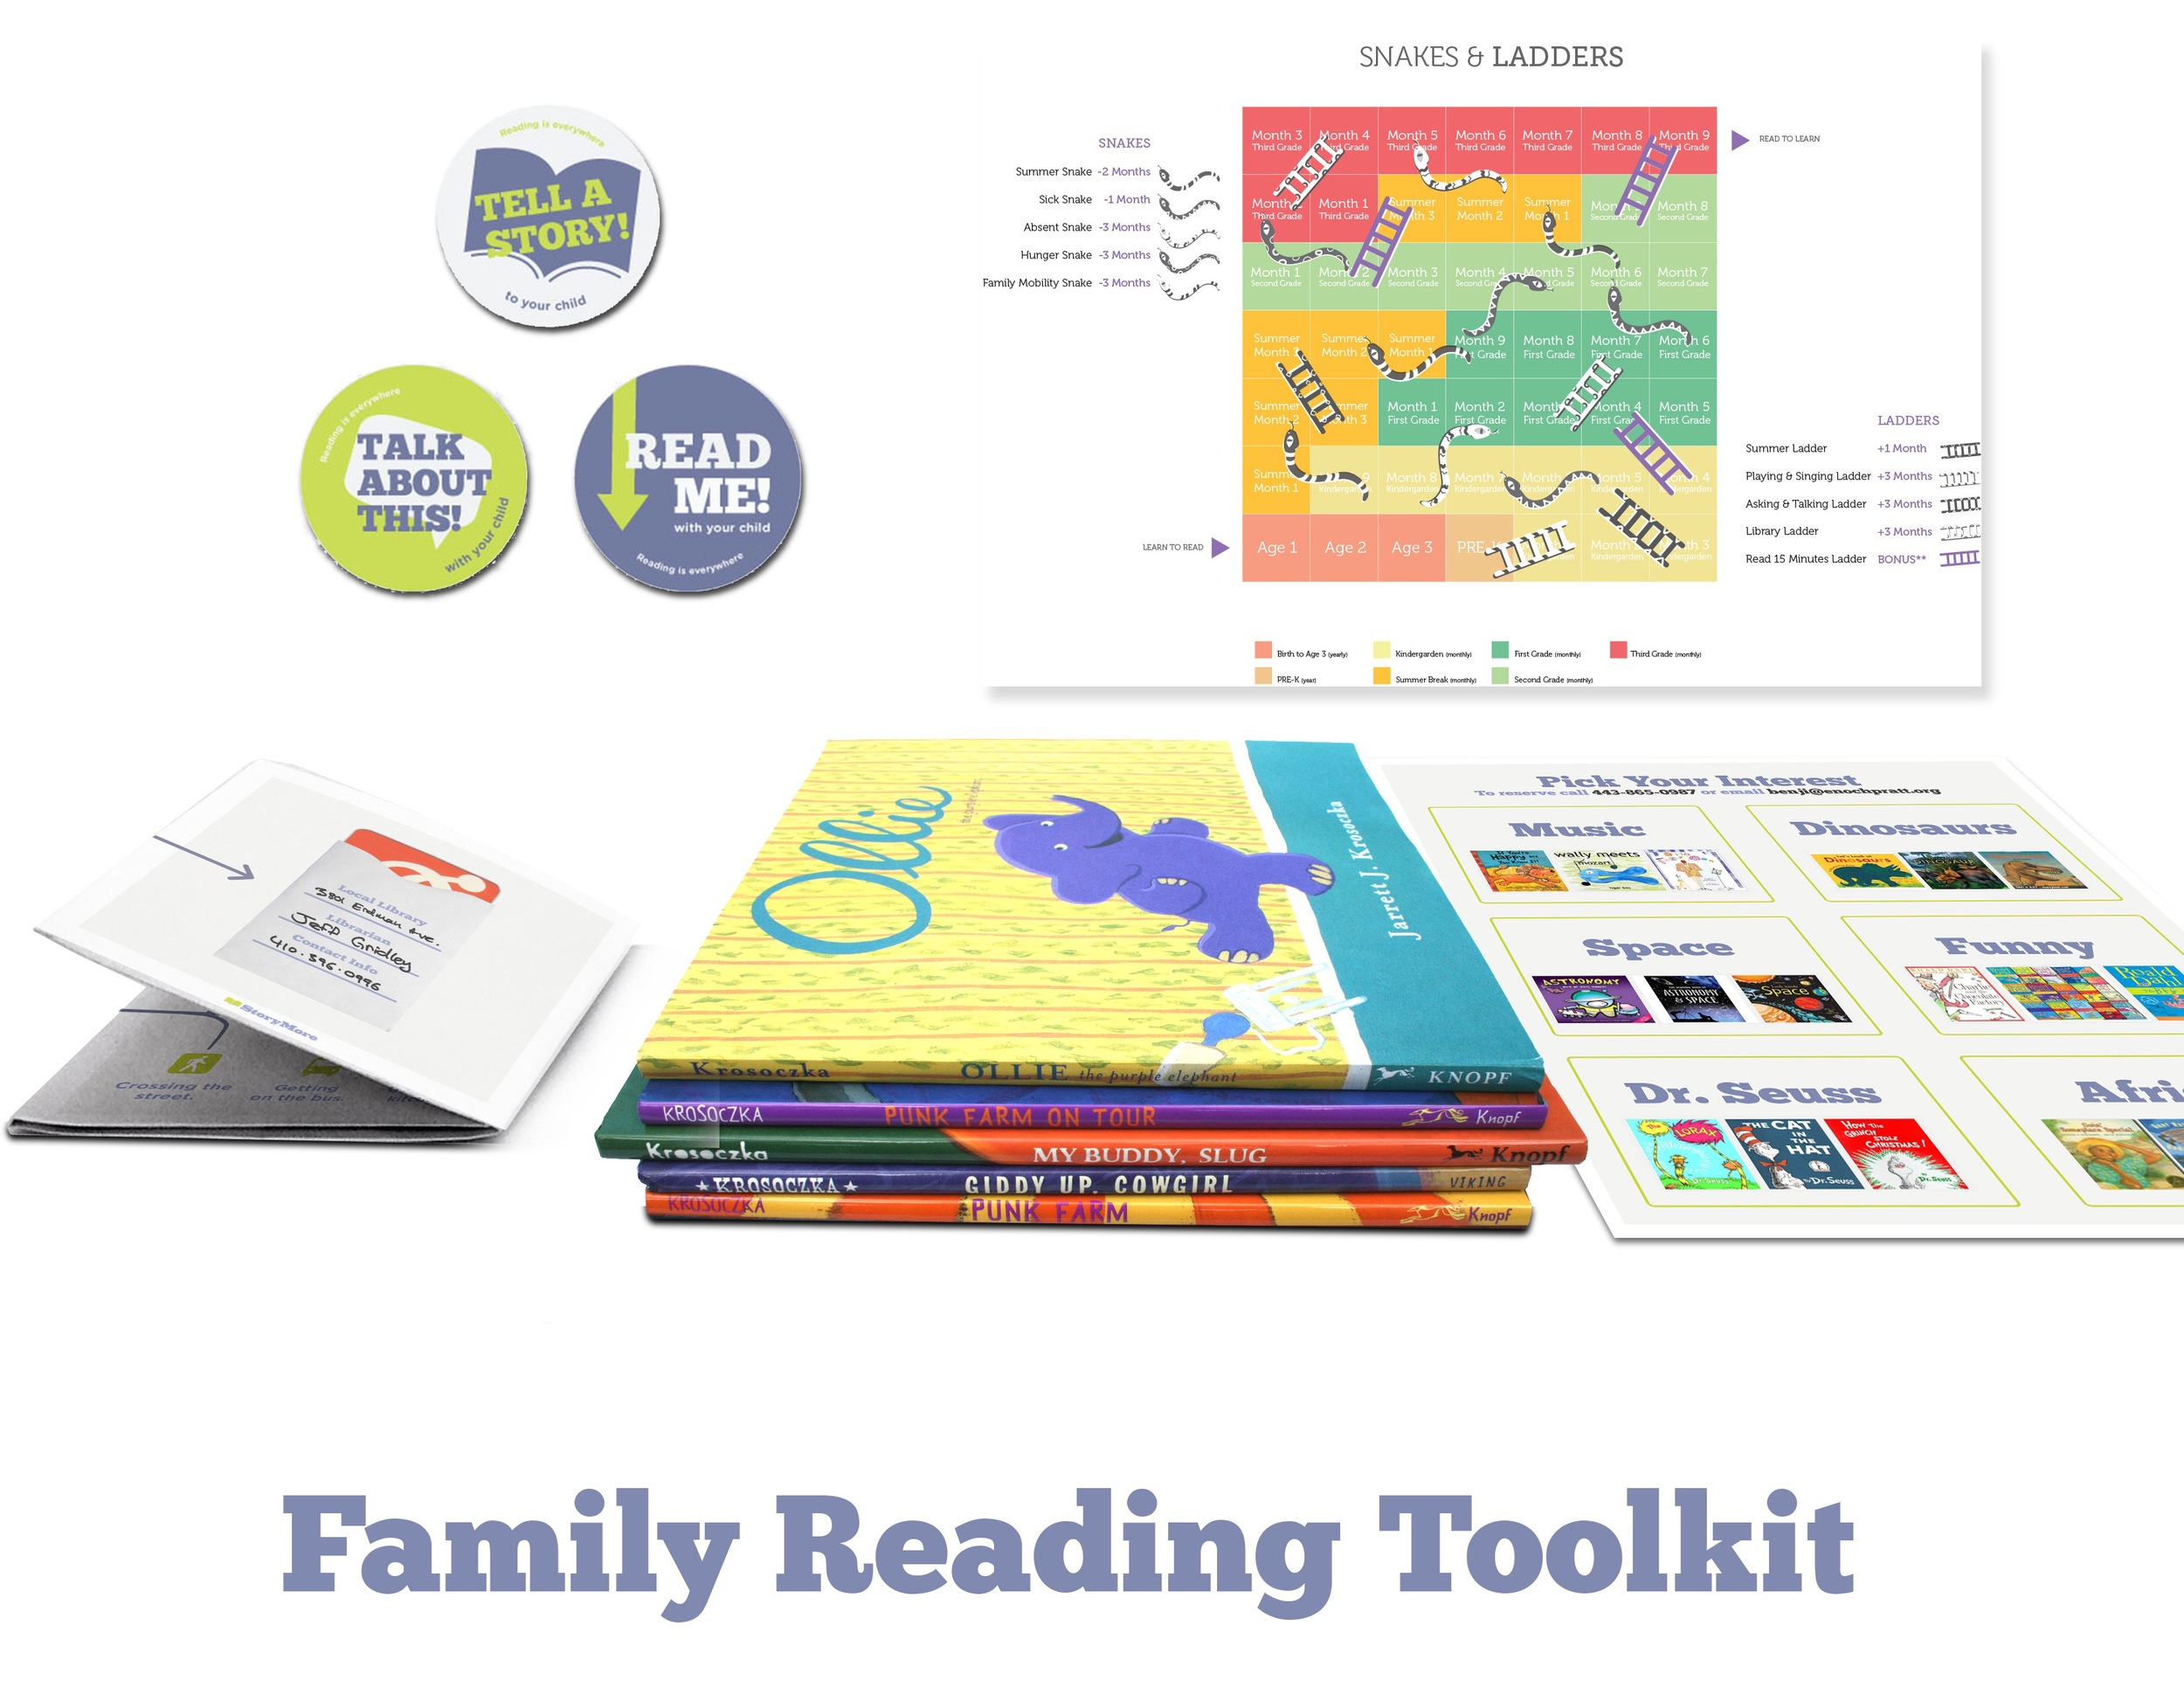 Storymore - Family Reading Toolkit